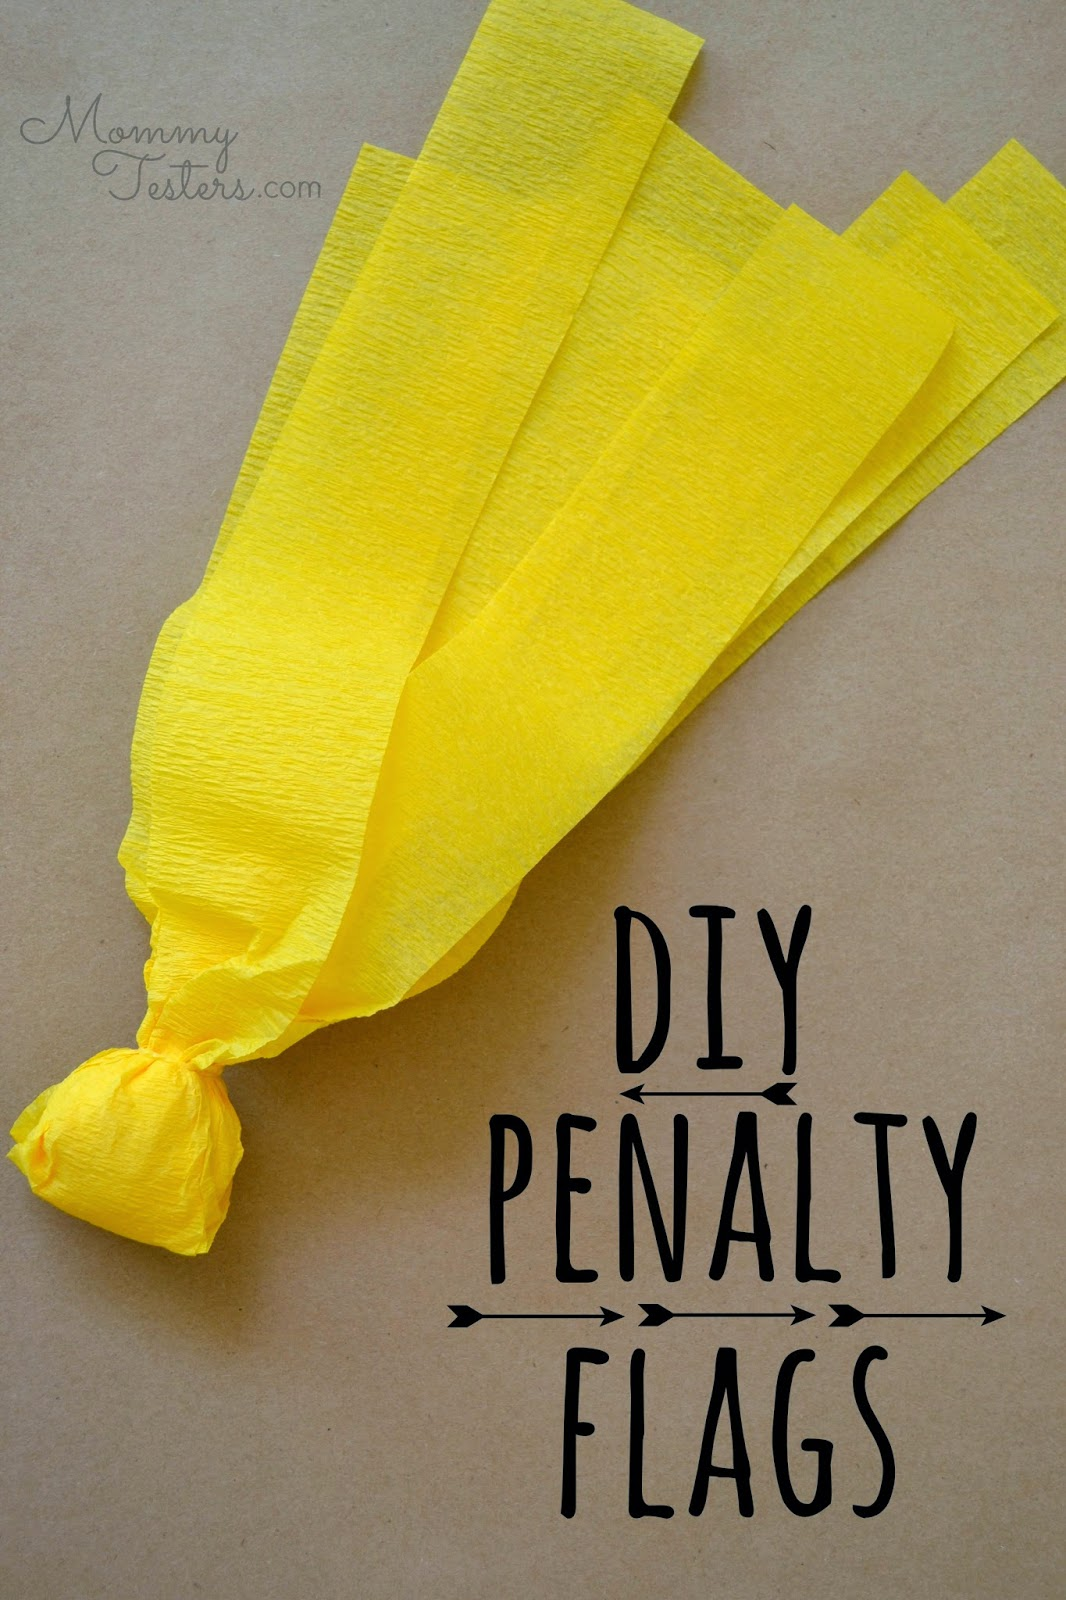 Mommy Testers, DIY Penalty Flags, Football penalty flags, How to make penalty flags, Easy penalty flags,